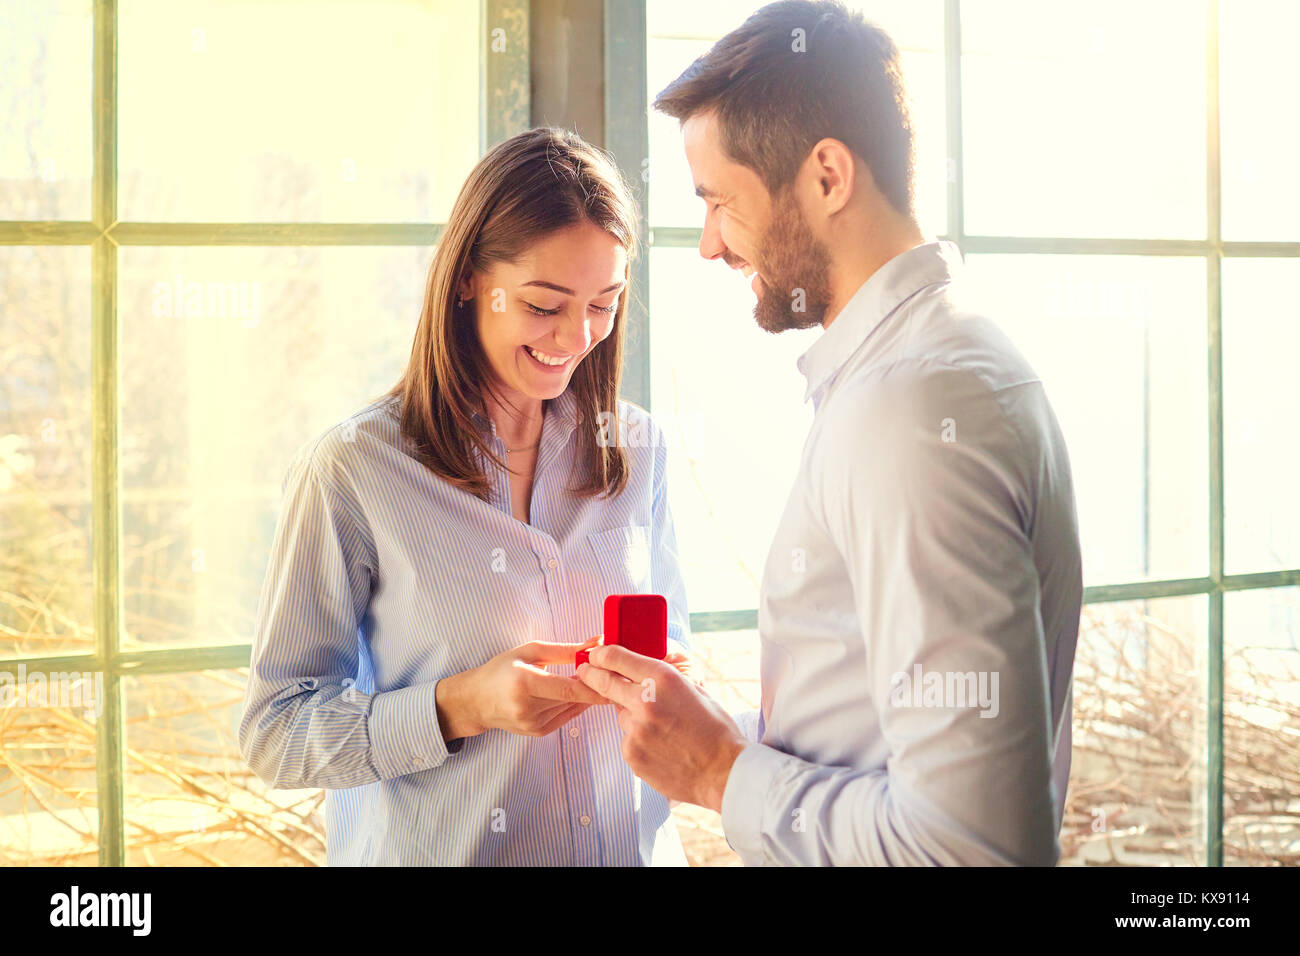 Marriage proposal. - Stock Image